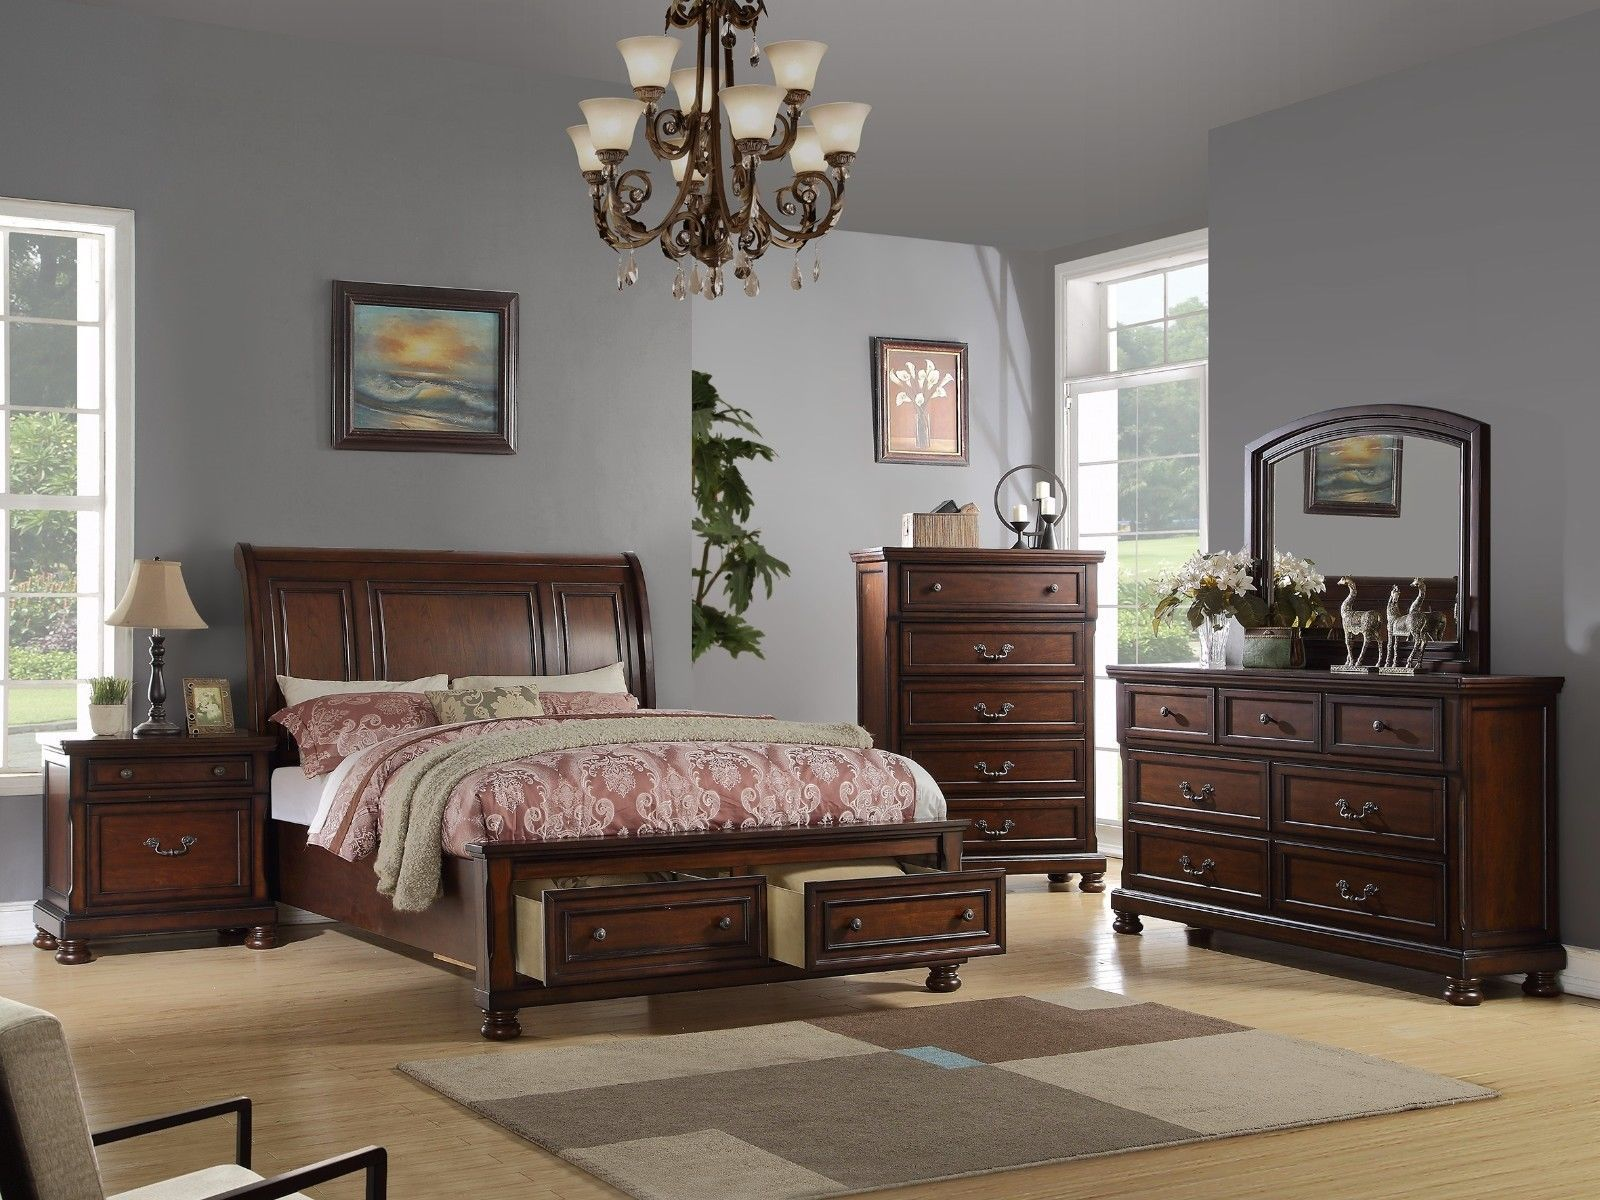 Queen Cal King Est King Bed W Drawers Dresser Mirror NS 4pc Bedroom  Furniture